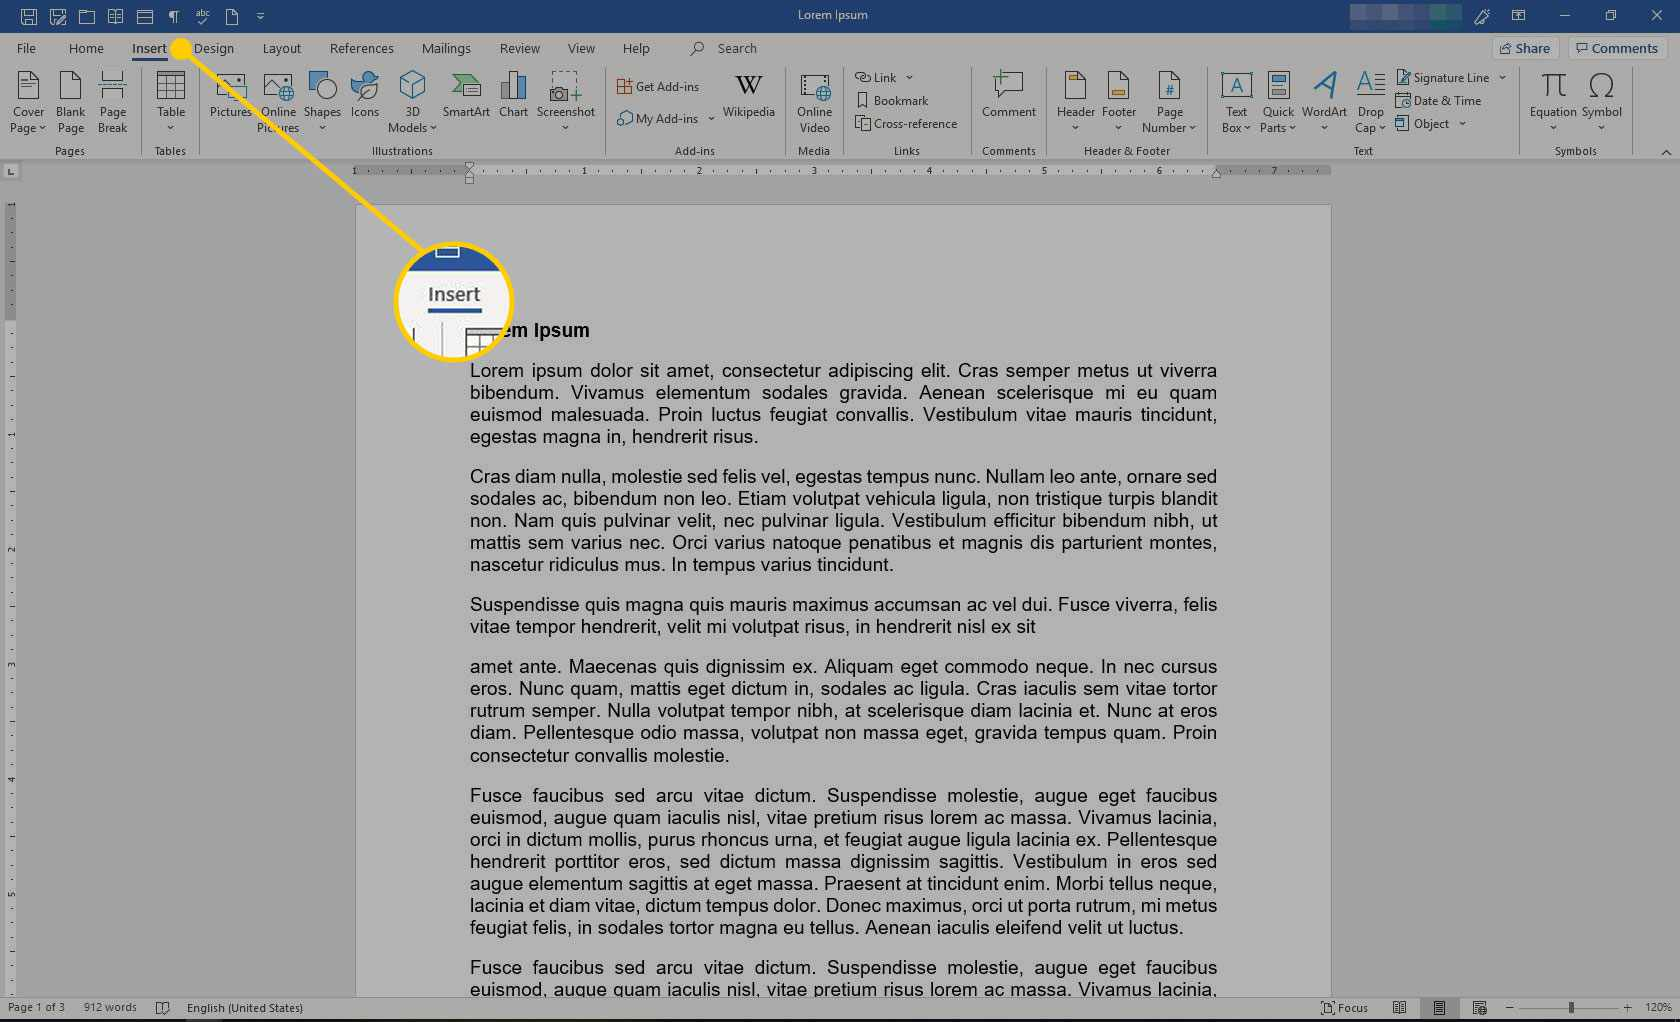 Microsoft Word with the Insert heading highlighted